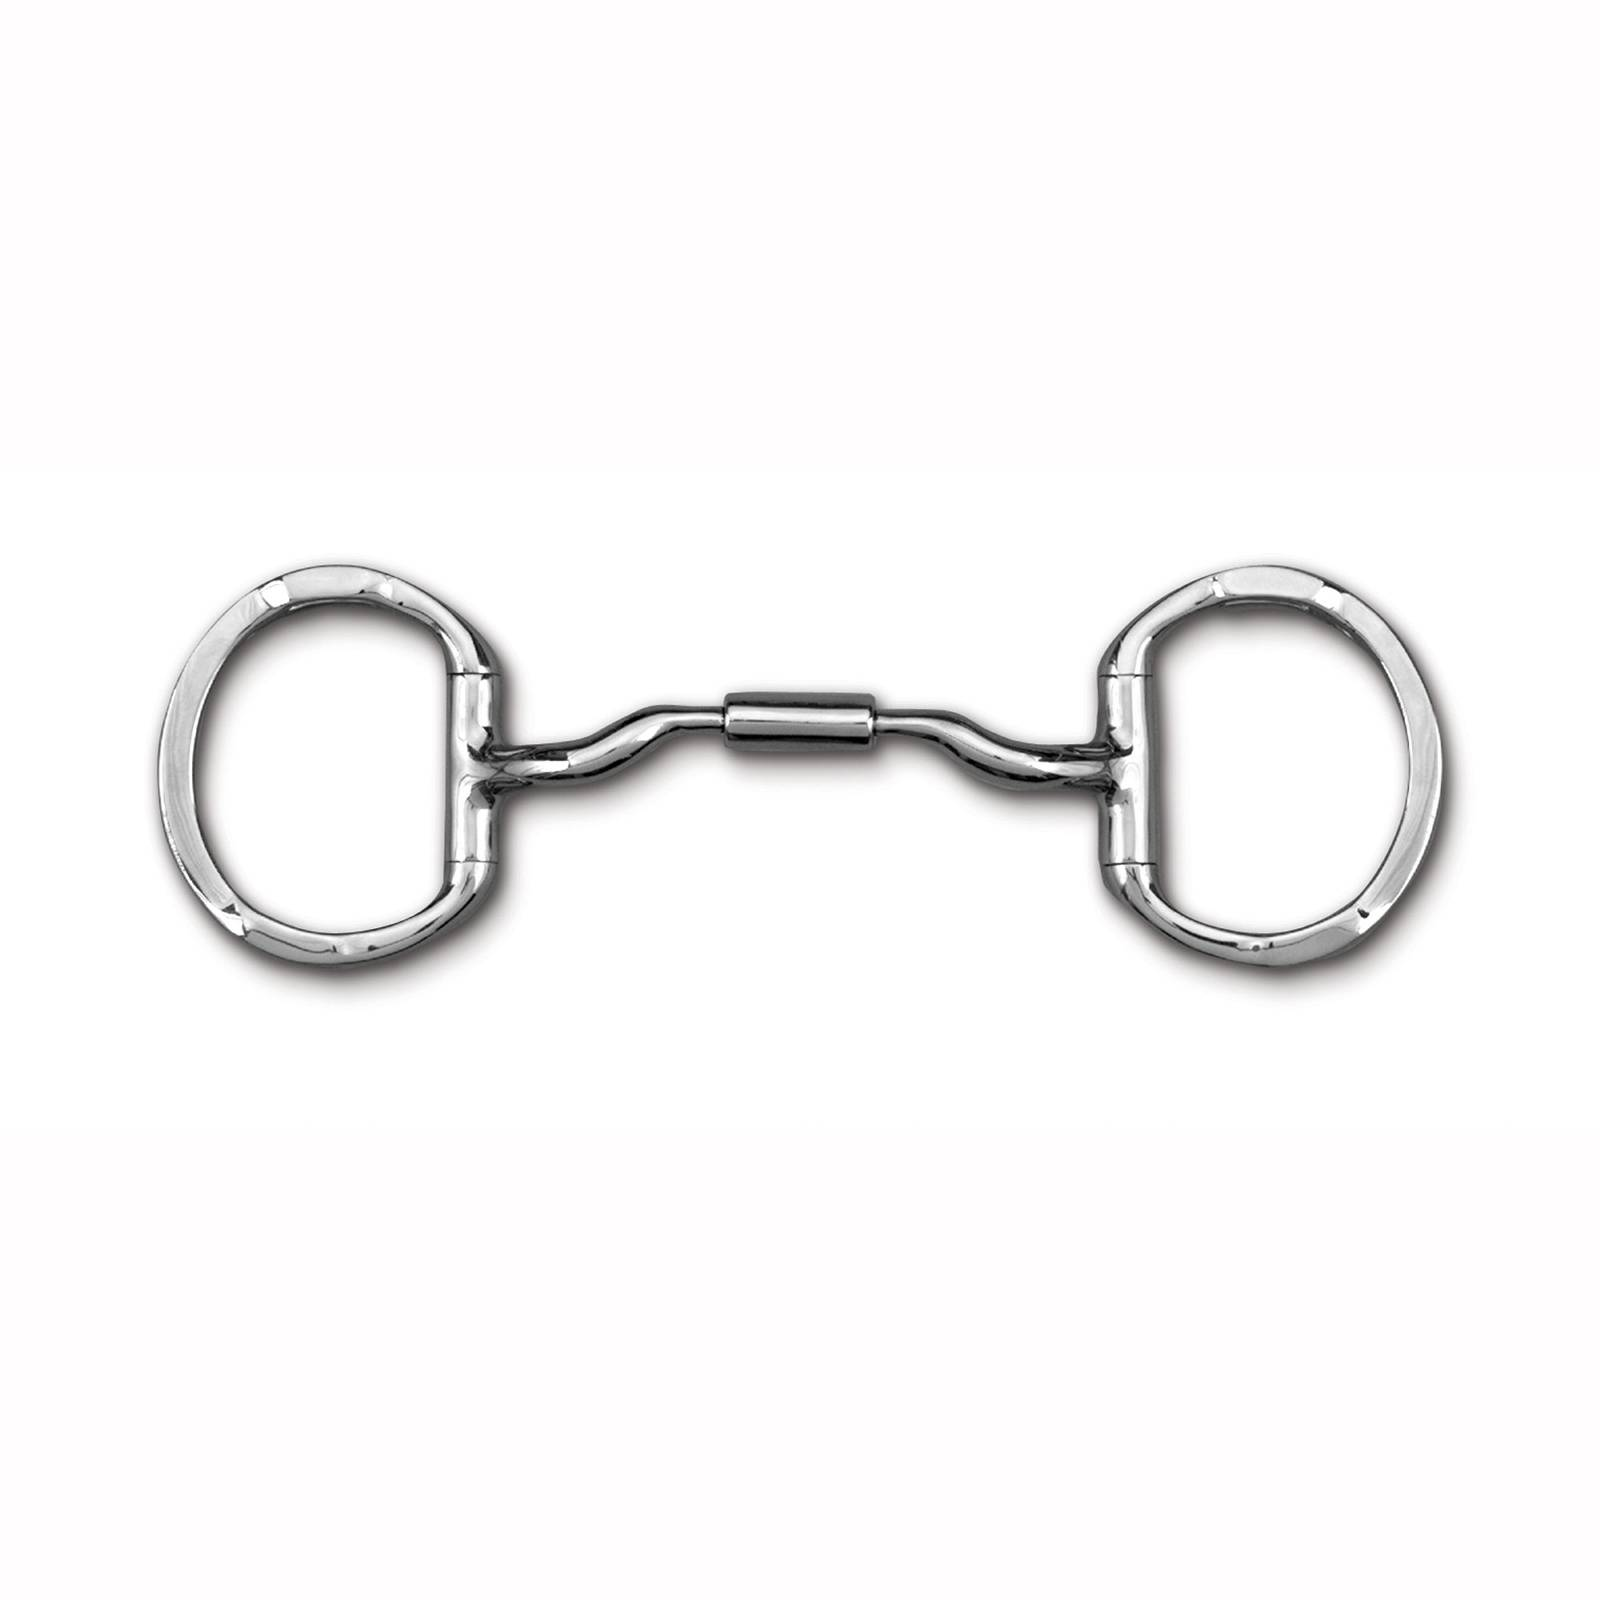 Myler Eggbutt Low Port Snaffle